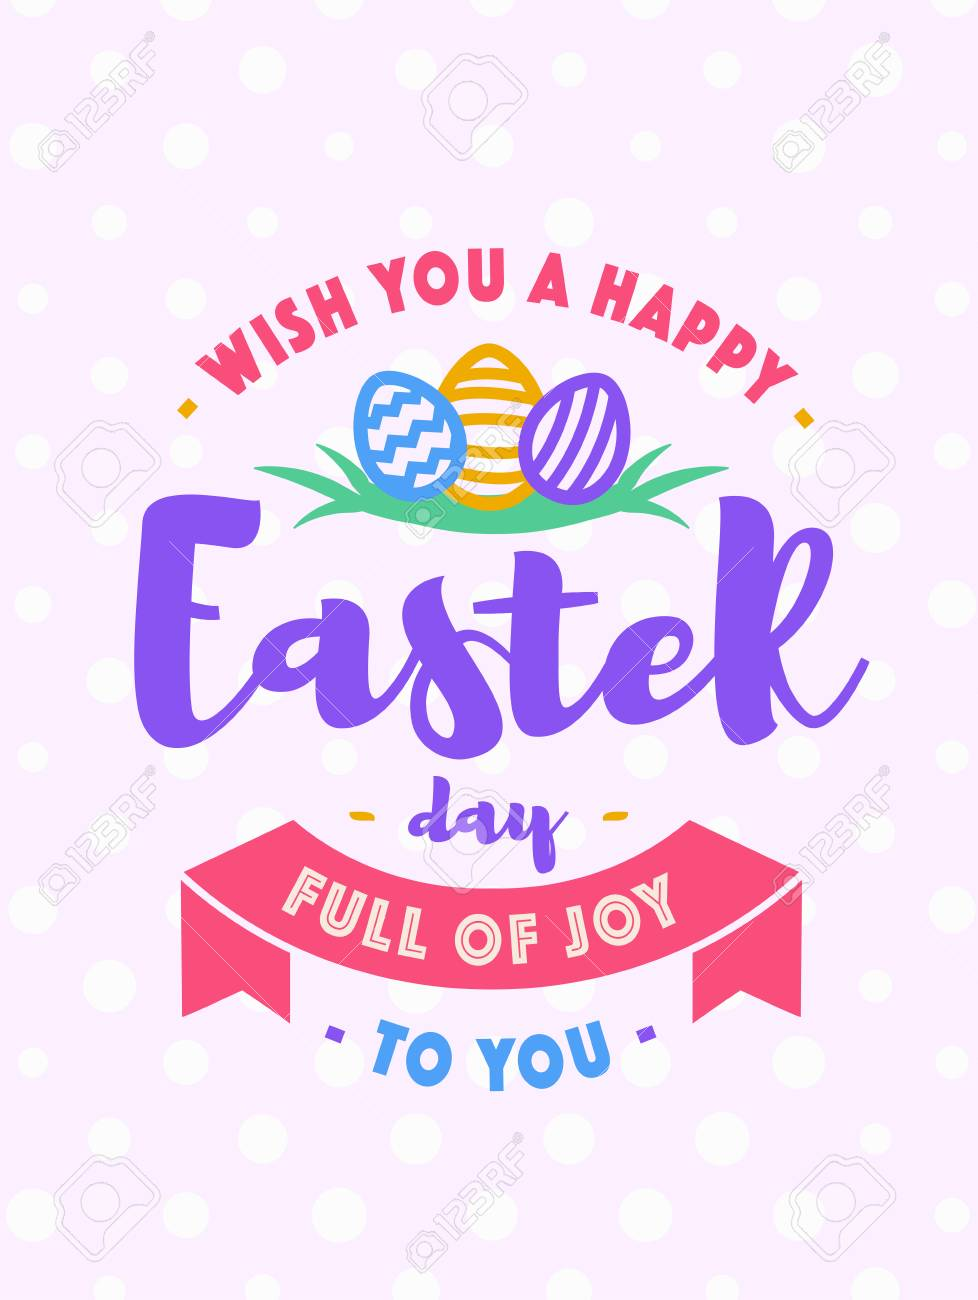 Easter Greeting Card With Wish You A Happy Easter Day Full Of Joy ...